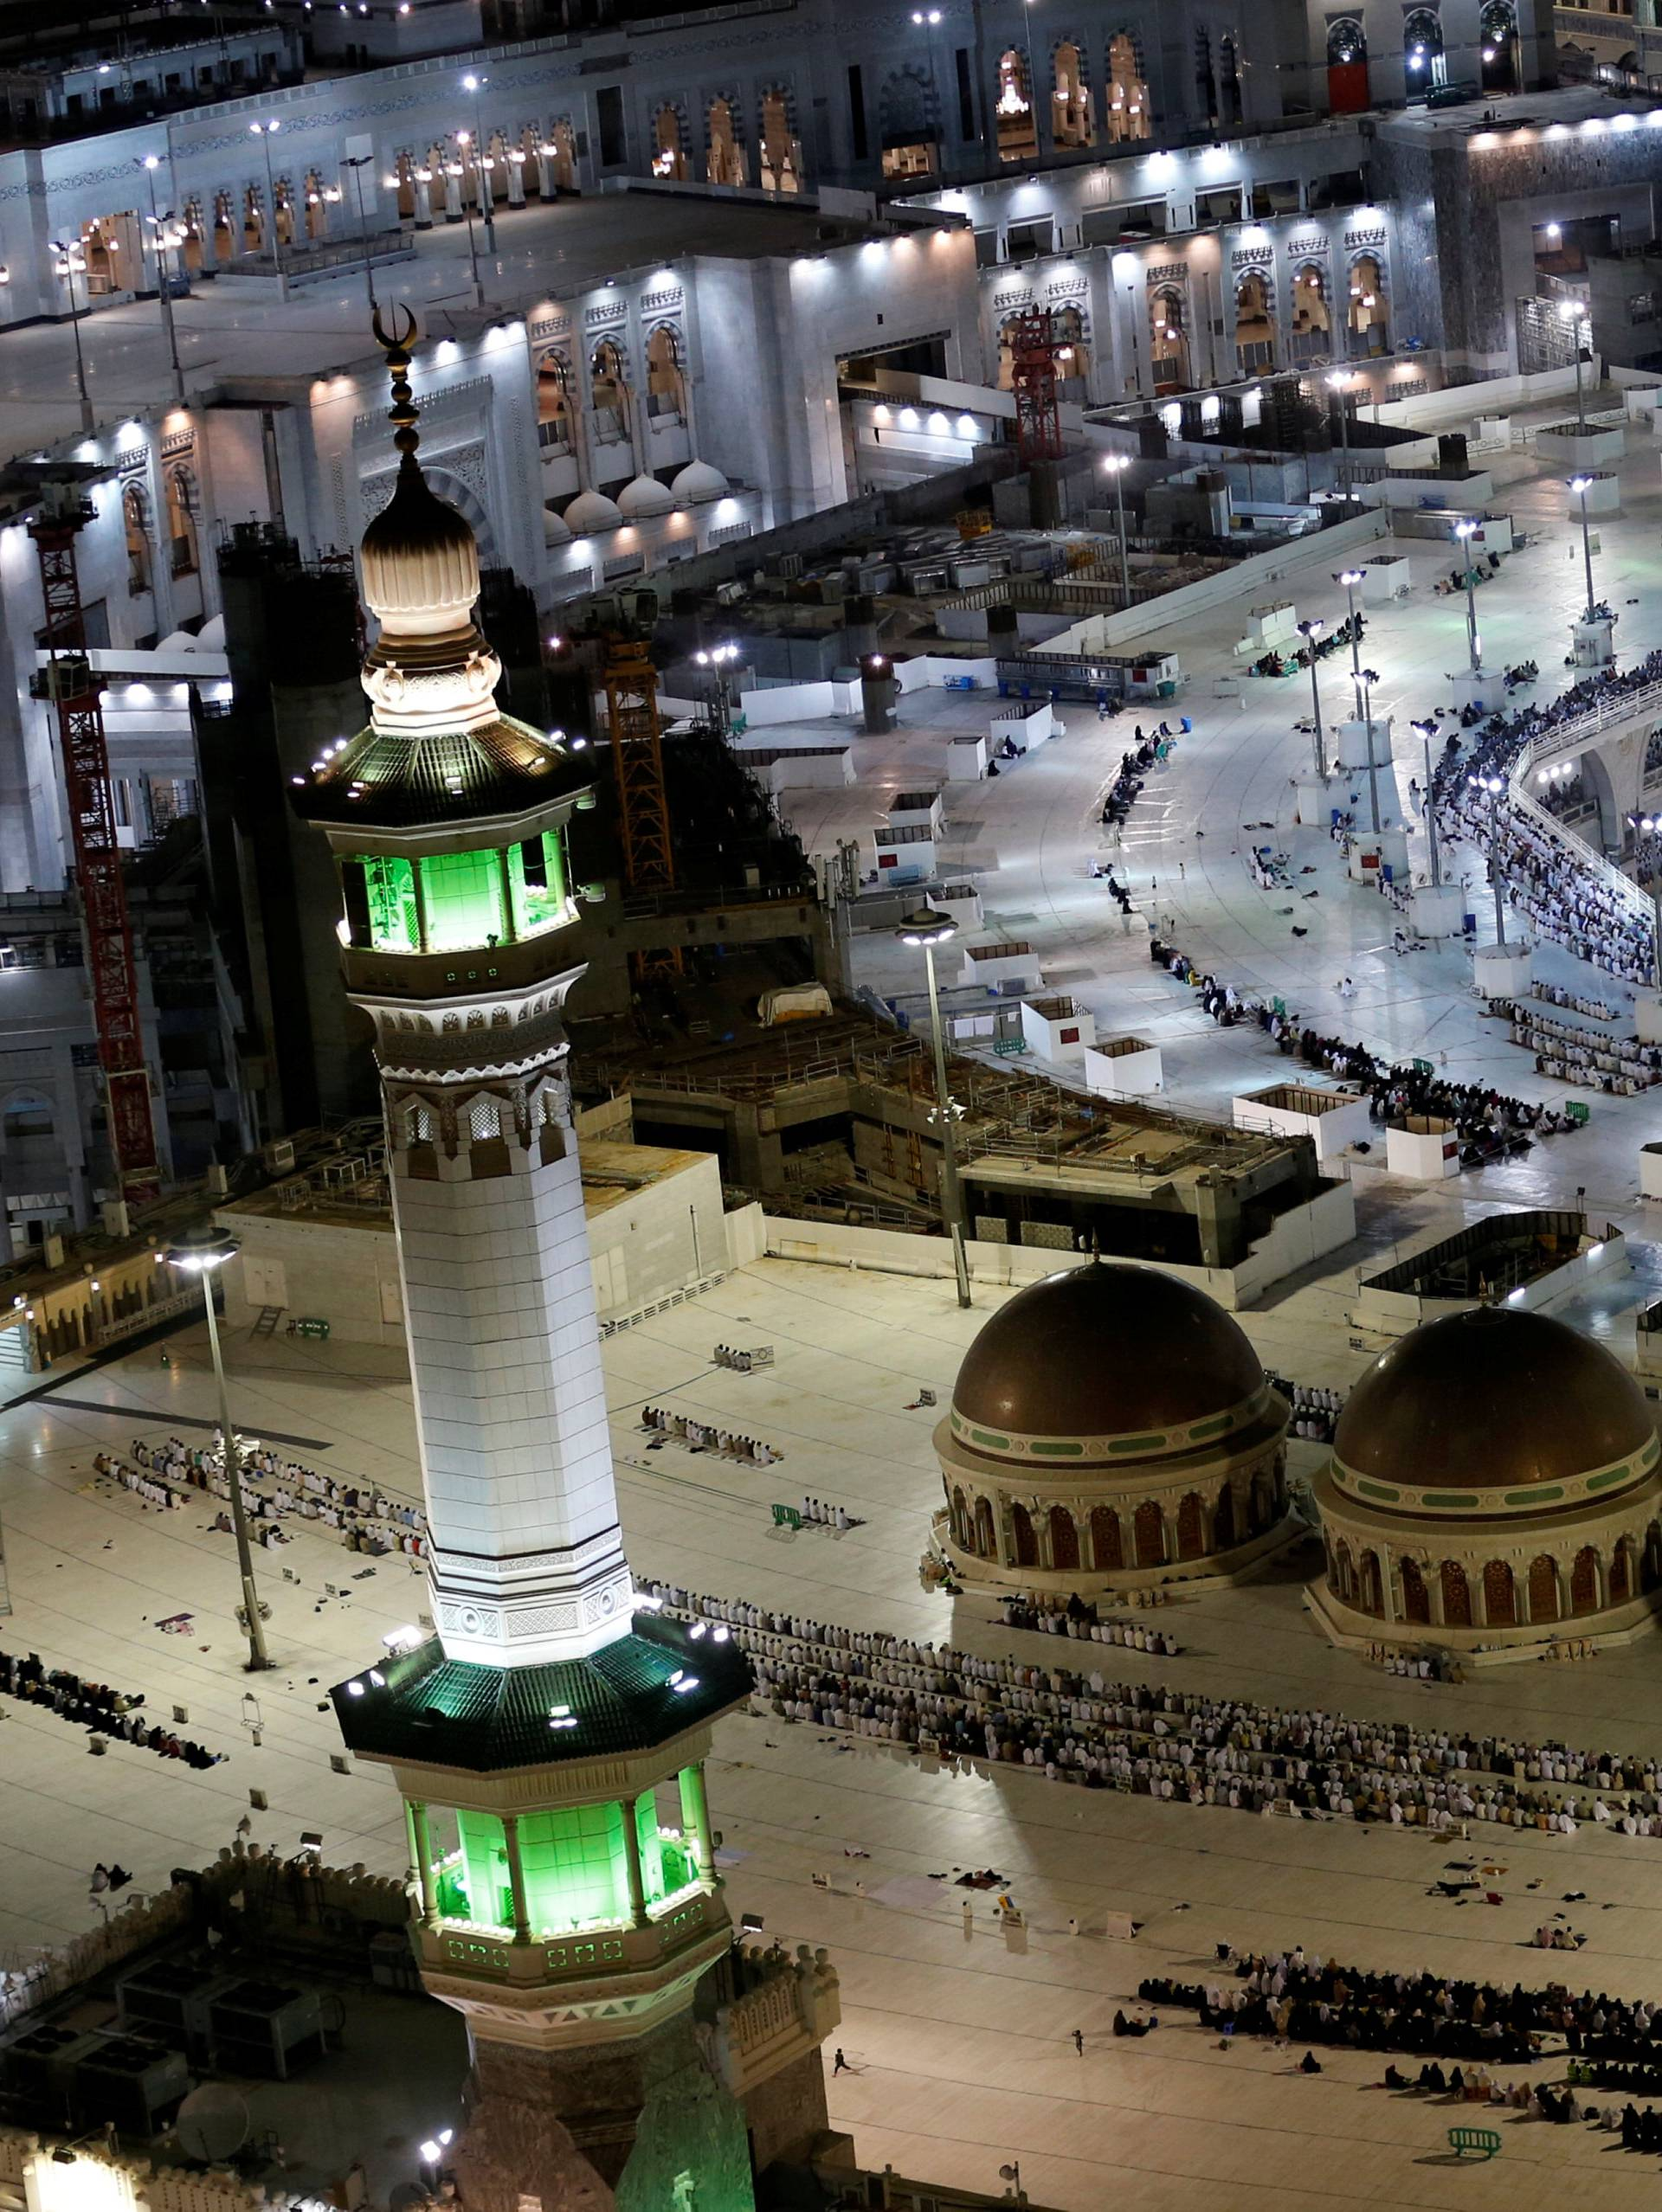 General view of the Grand Mosque in Mecca